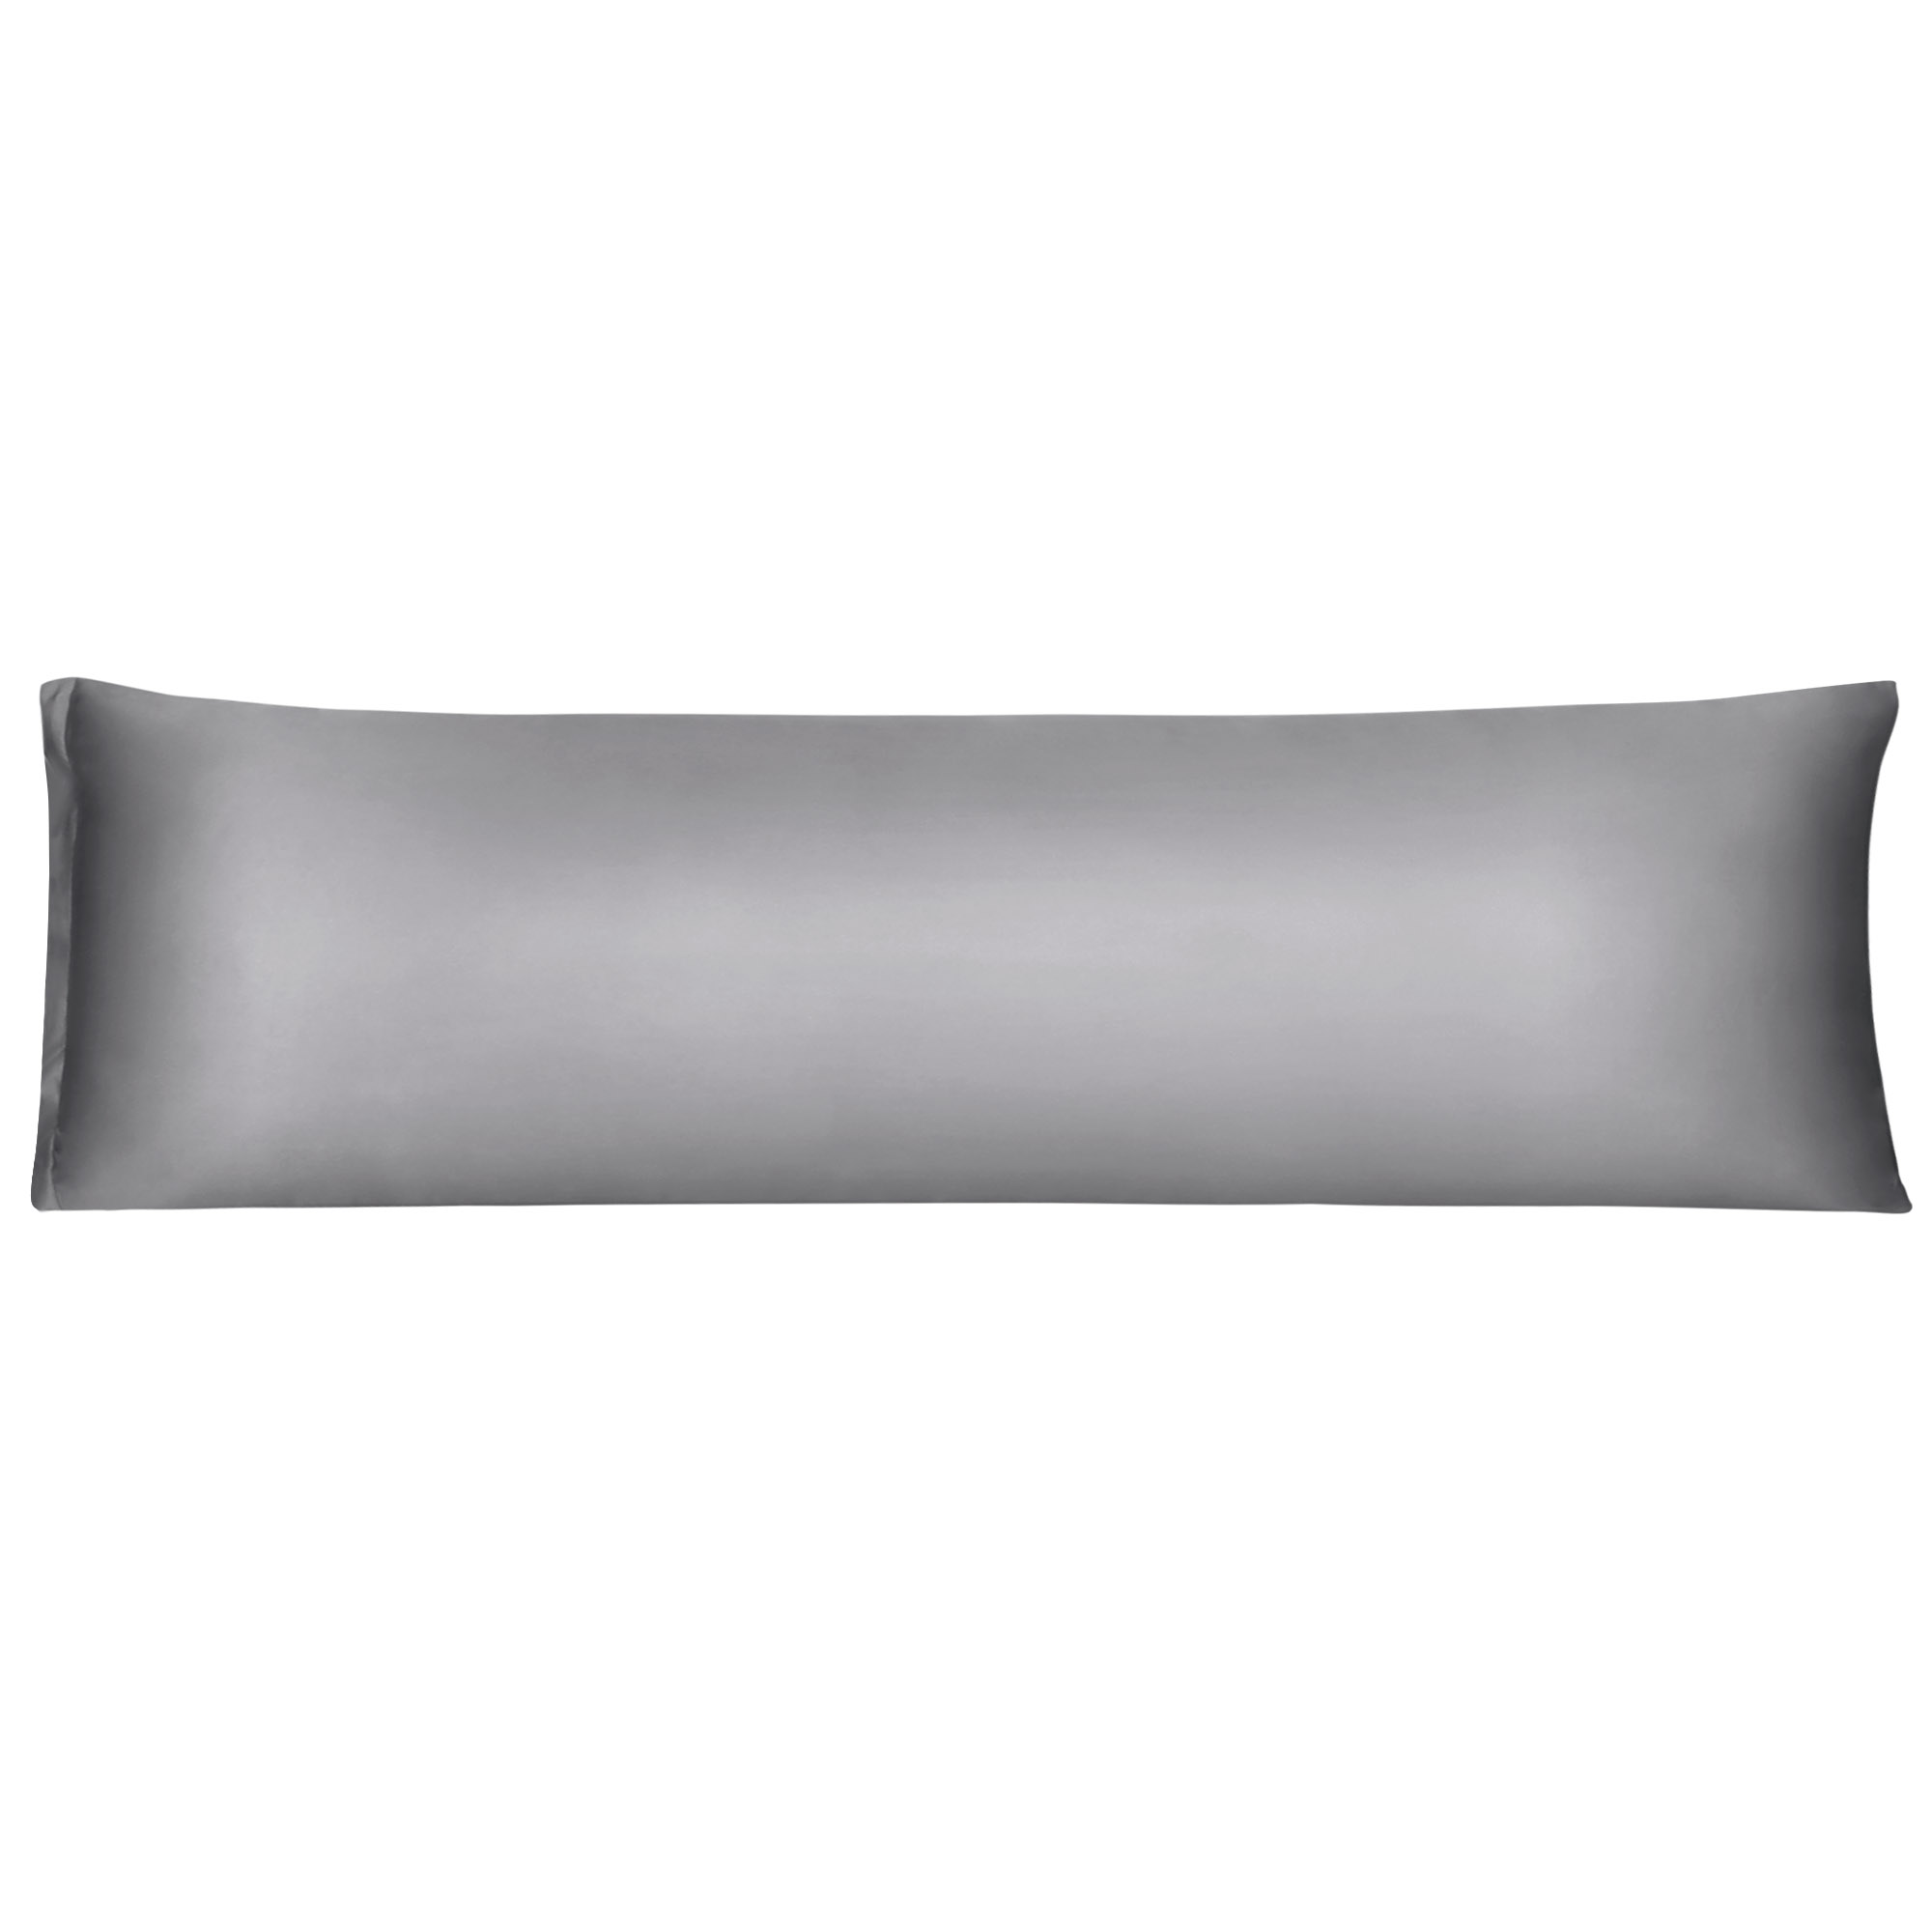 Zippered Grey Silky Satin Body Pillow Cover 21x72 Long Pillow Cases Covers